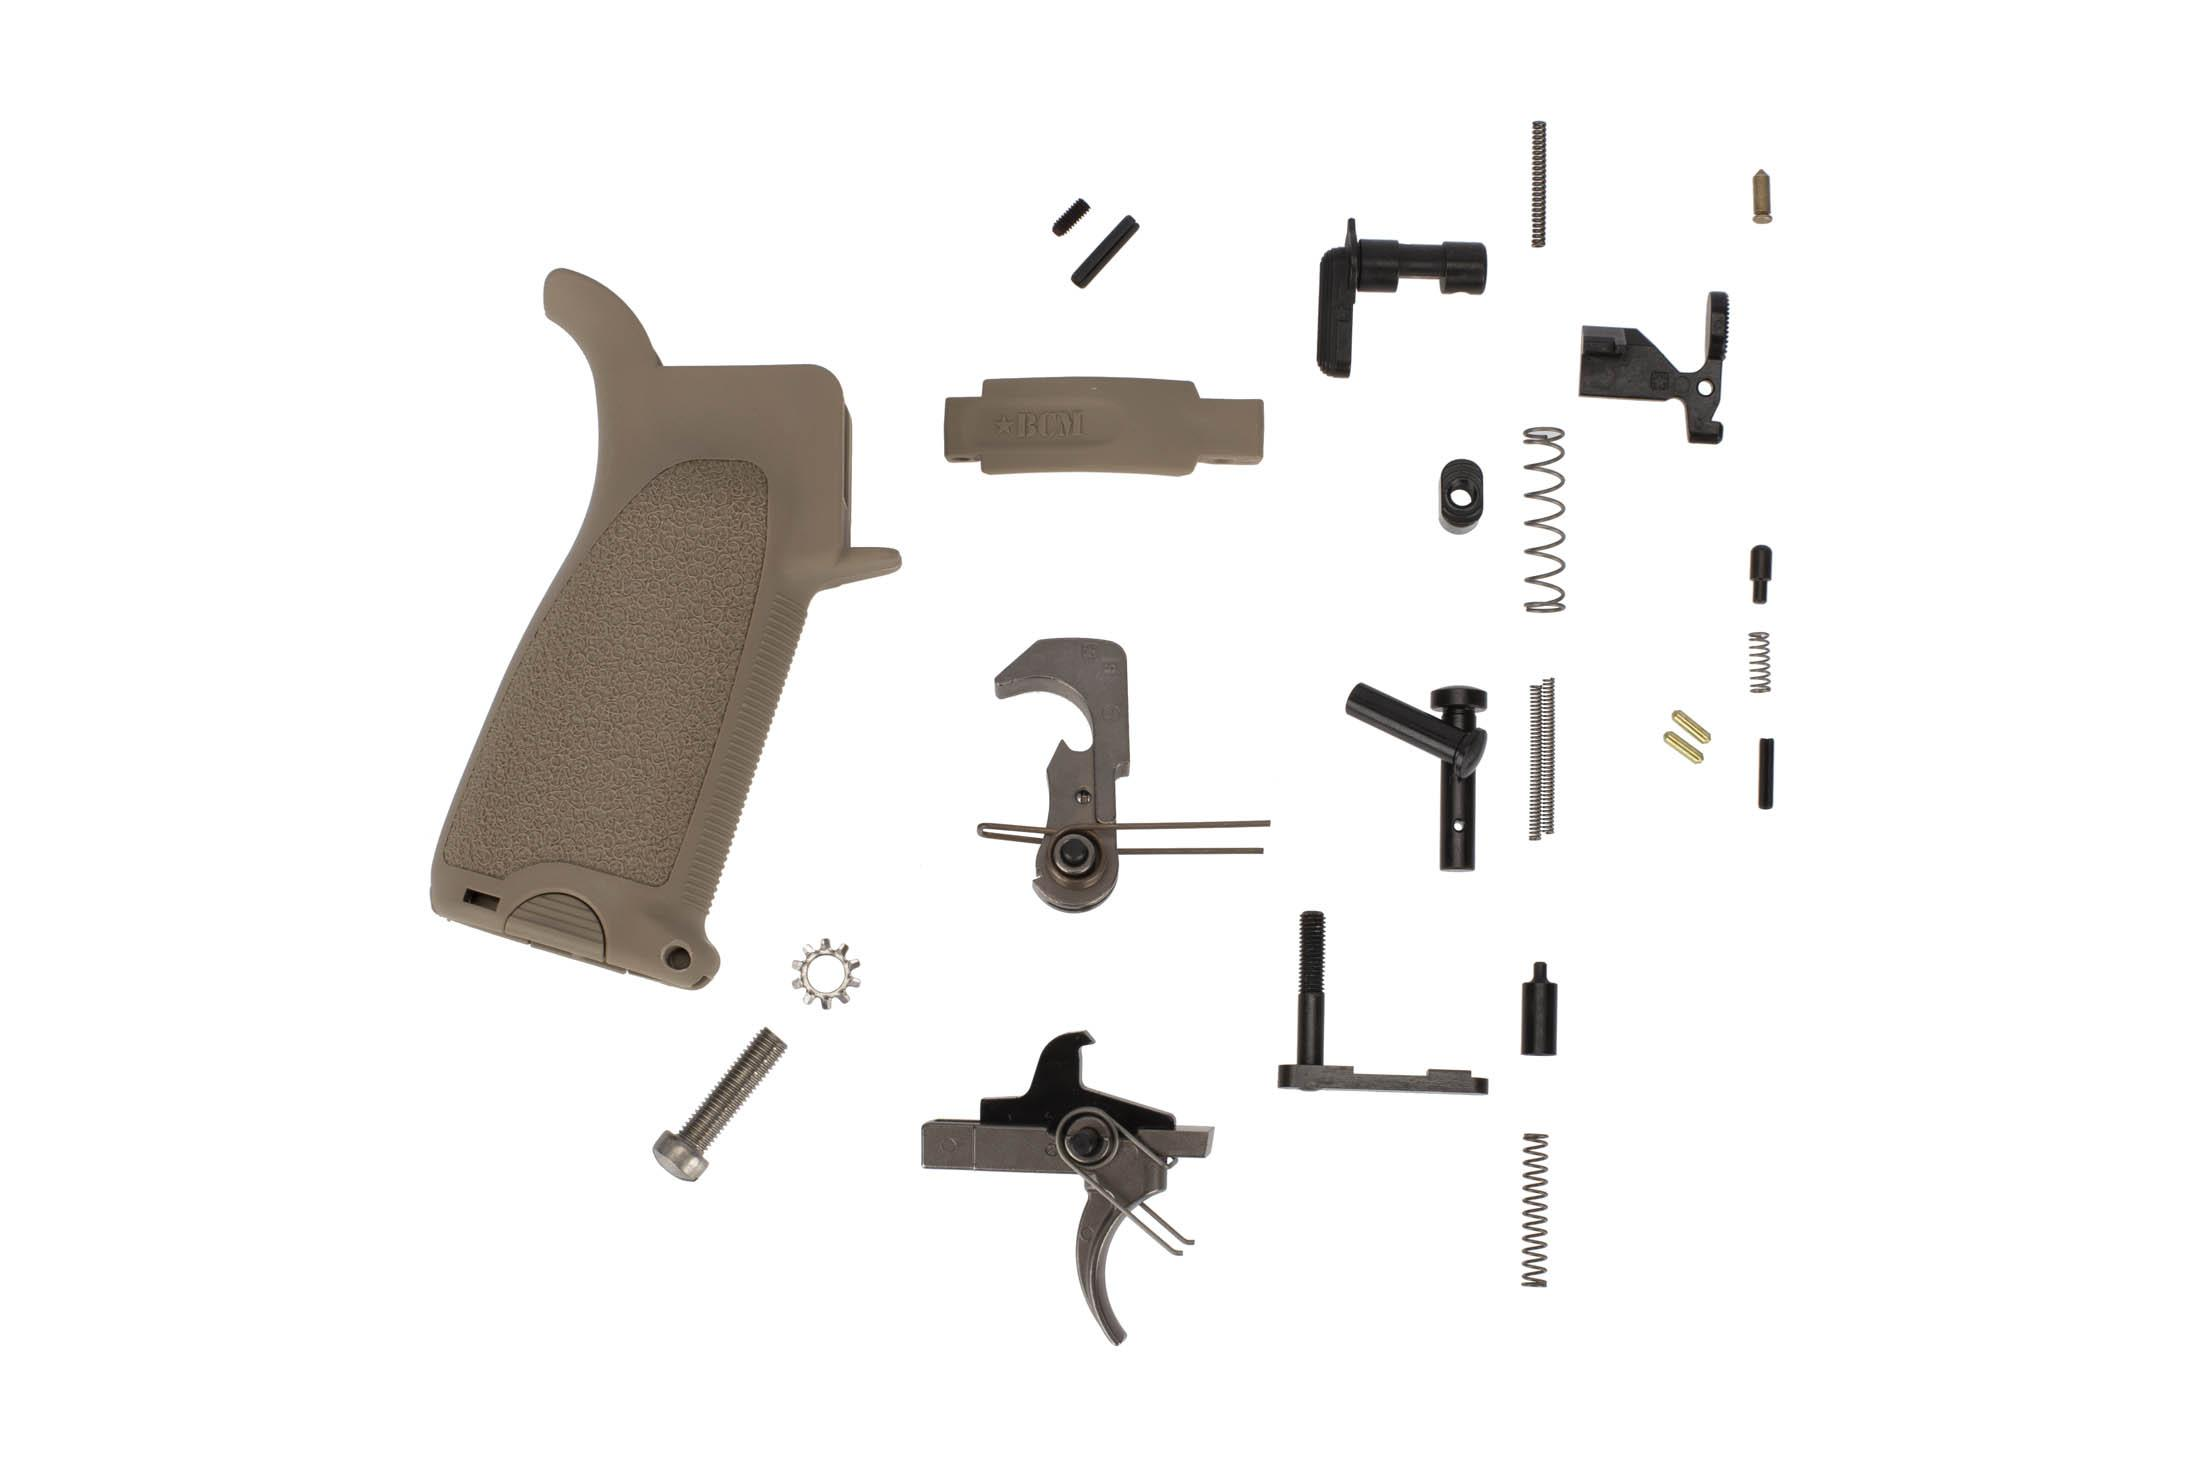 Bravo Company GUNFIGHTER Enhanced AR-15 lower parts kit with FDE BCM grip and trigger guard